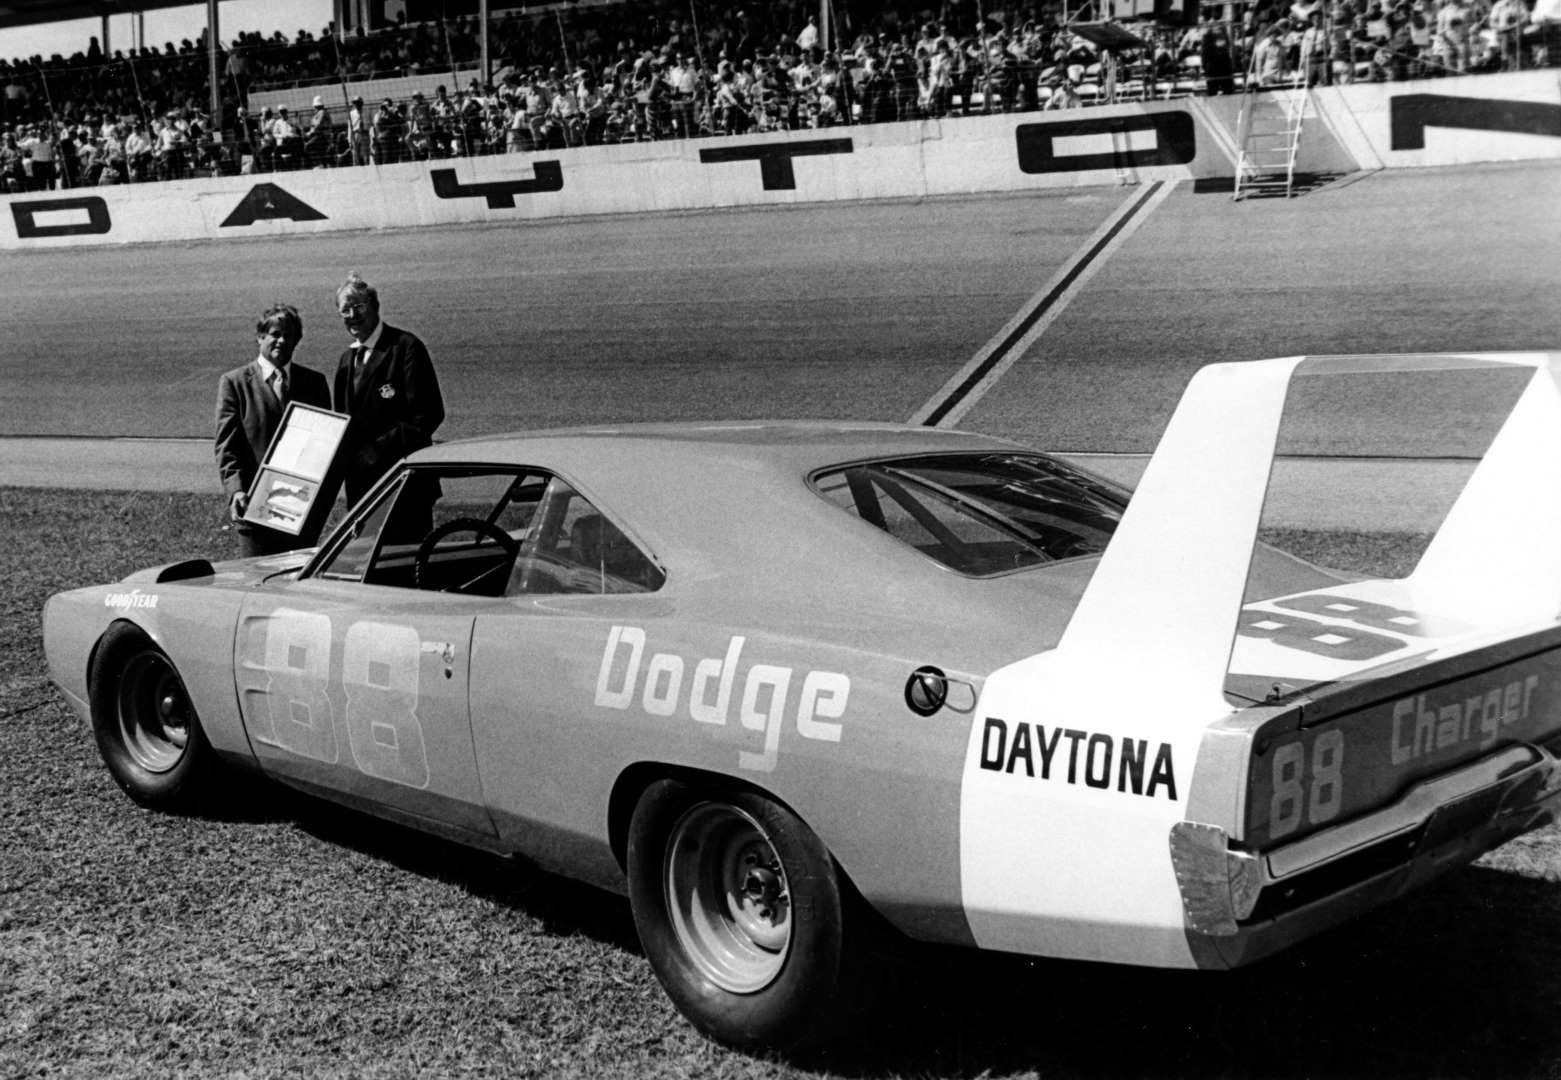 Chrysler test driver Buddy Baker took the No. 88 Dodge to a 200.447